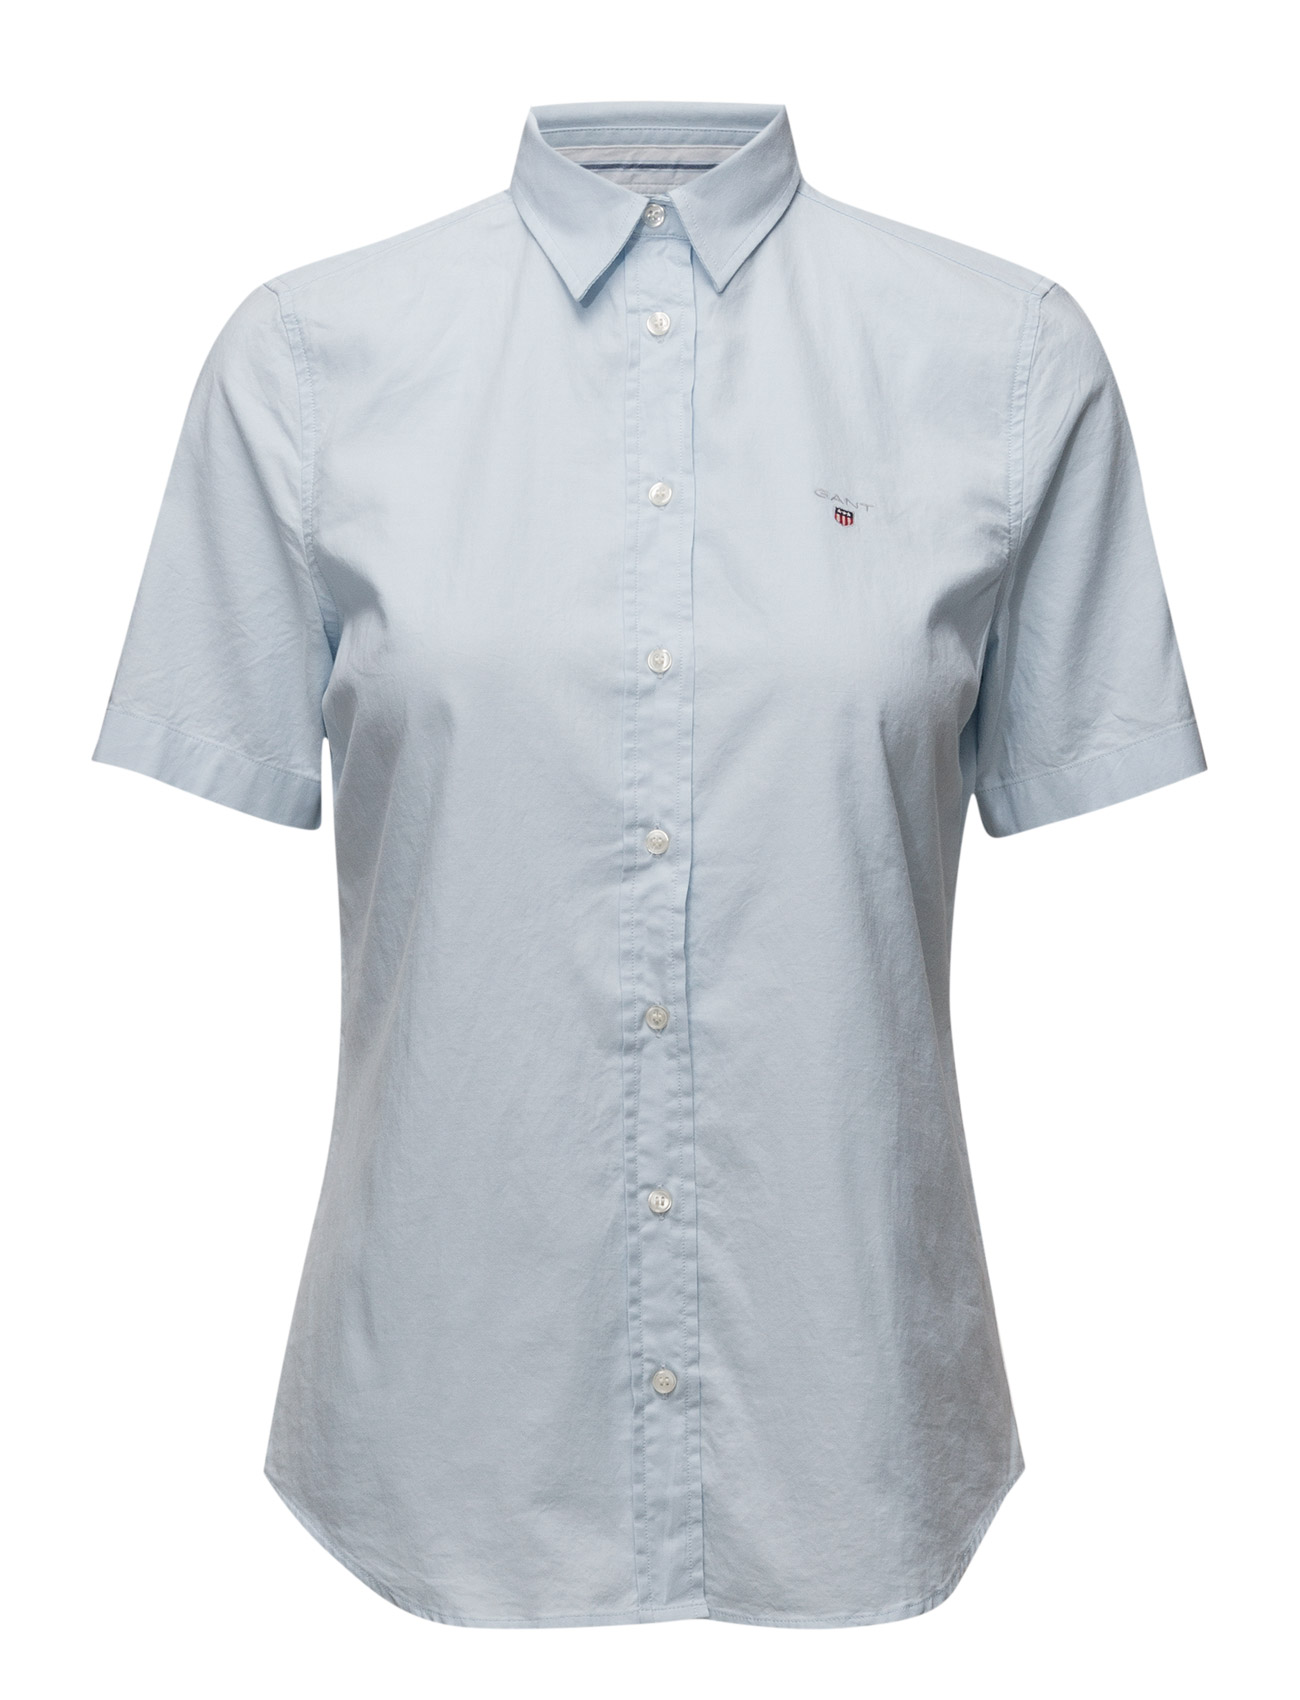 Image of Stretch Oxford Solid Ss Shirt (3117282671)